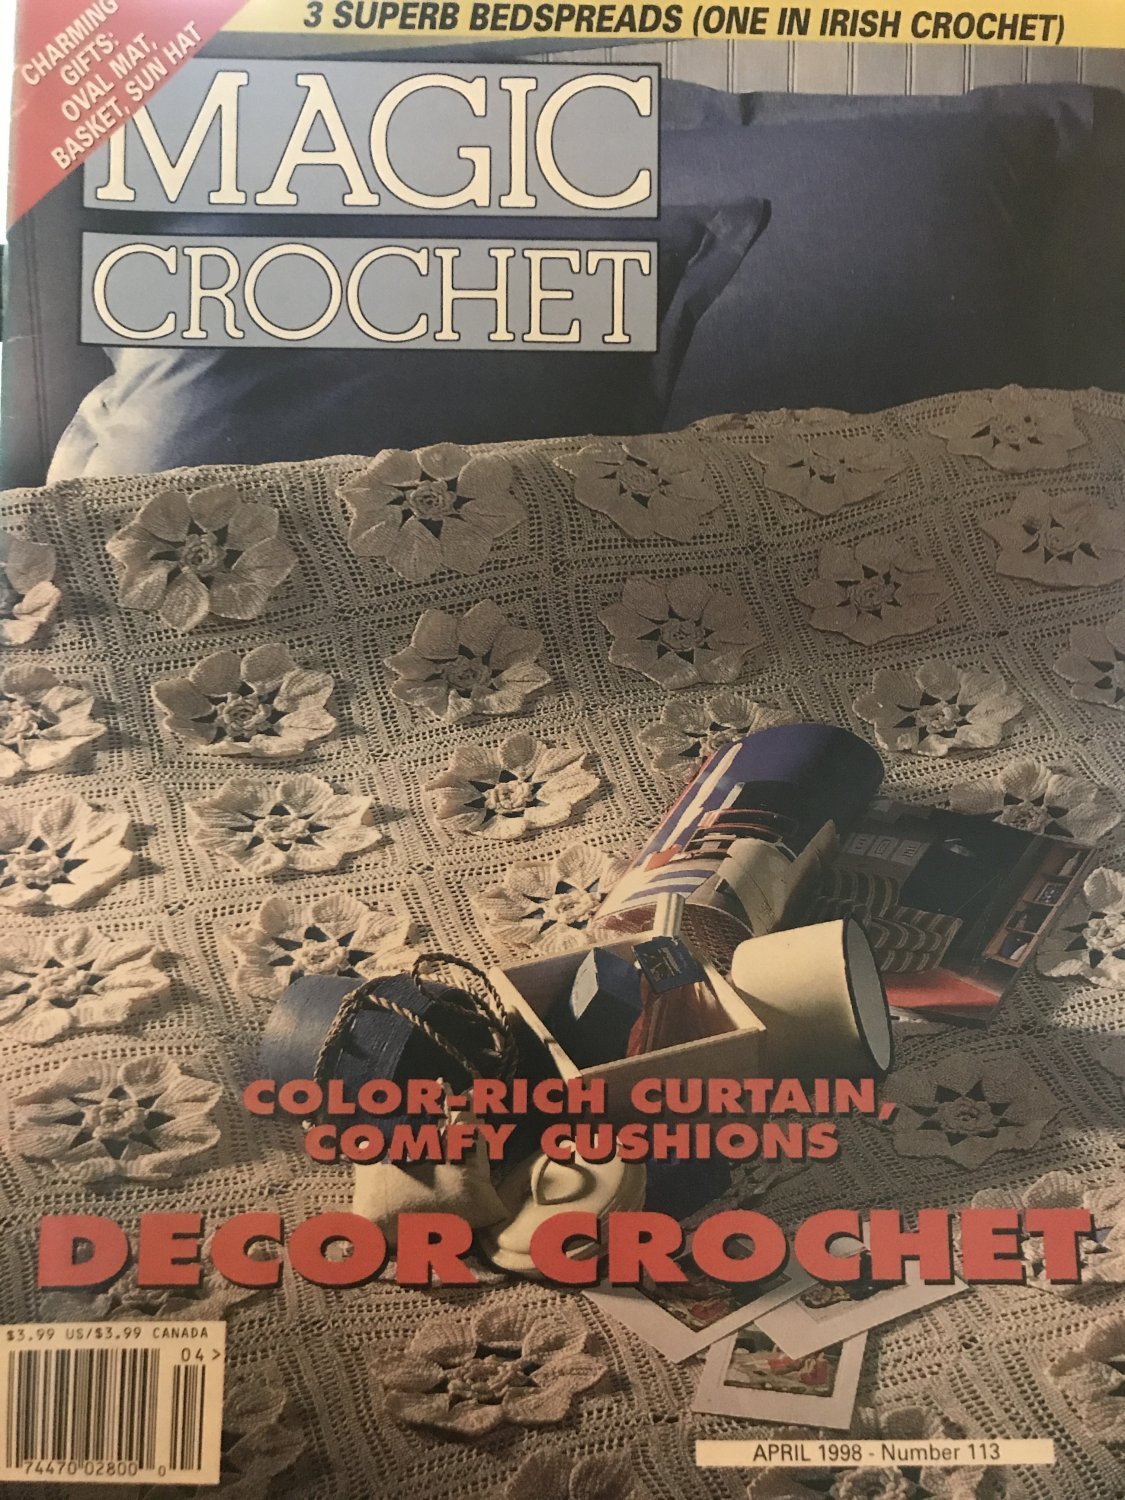 Magic Crochet Pattern Magazine Number 113 April 1998